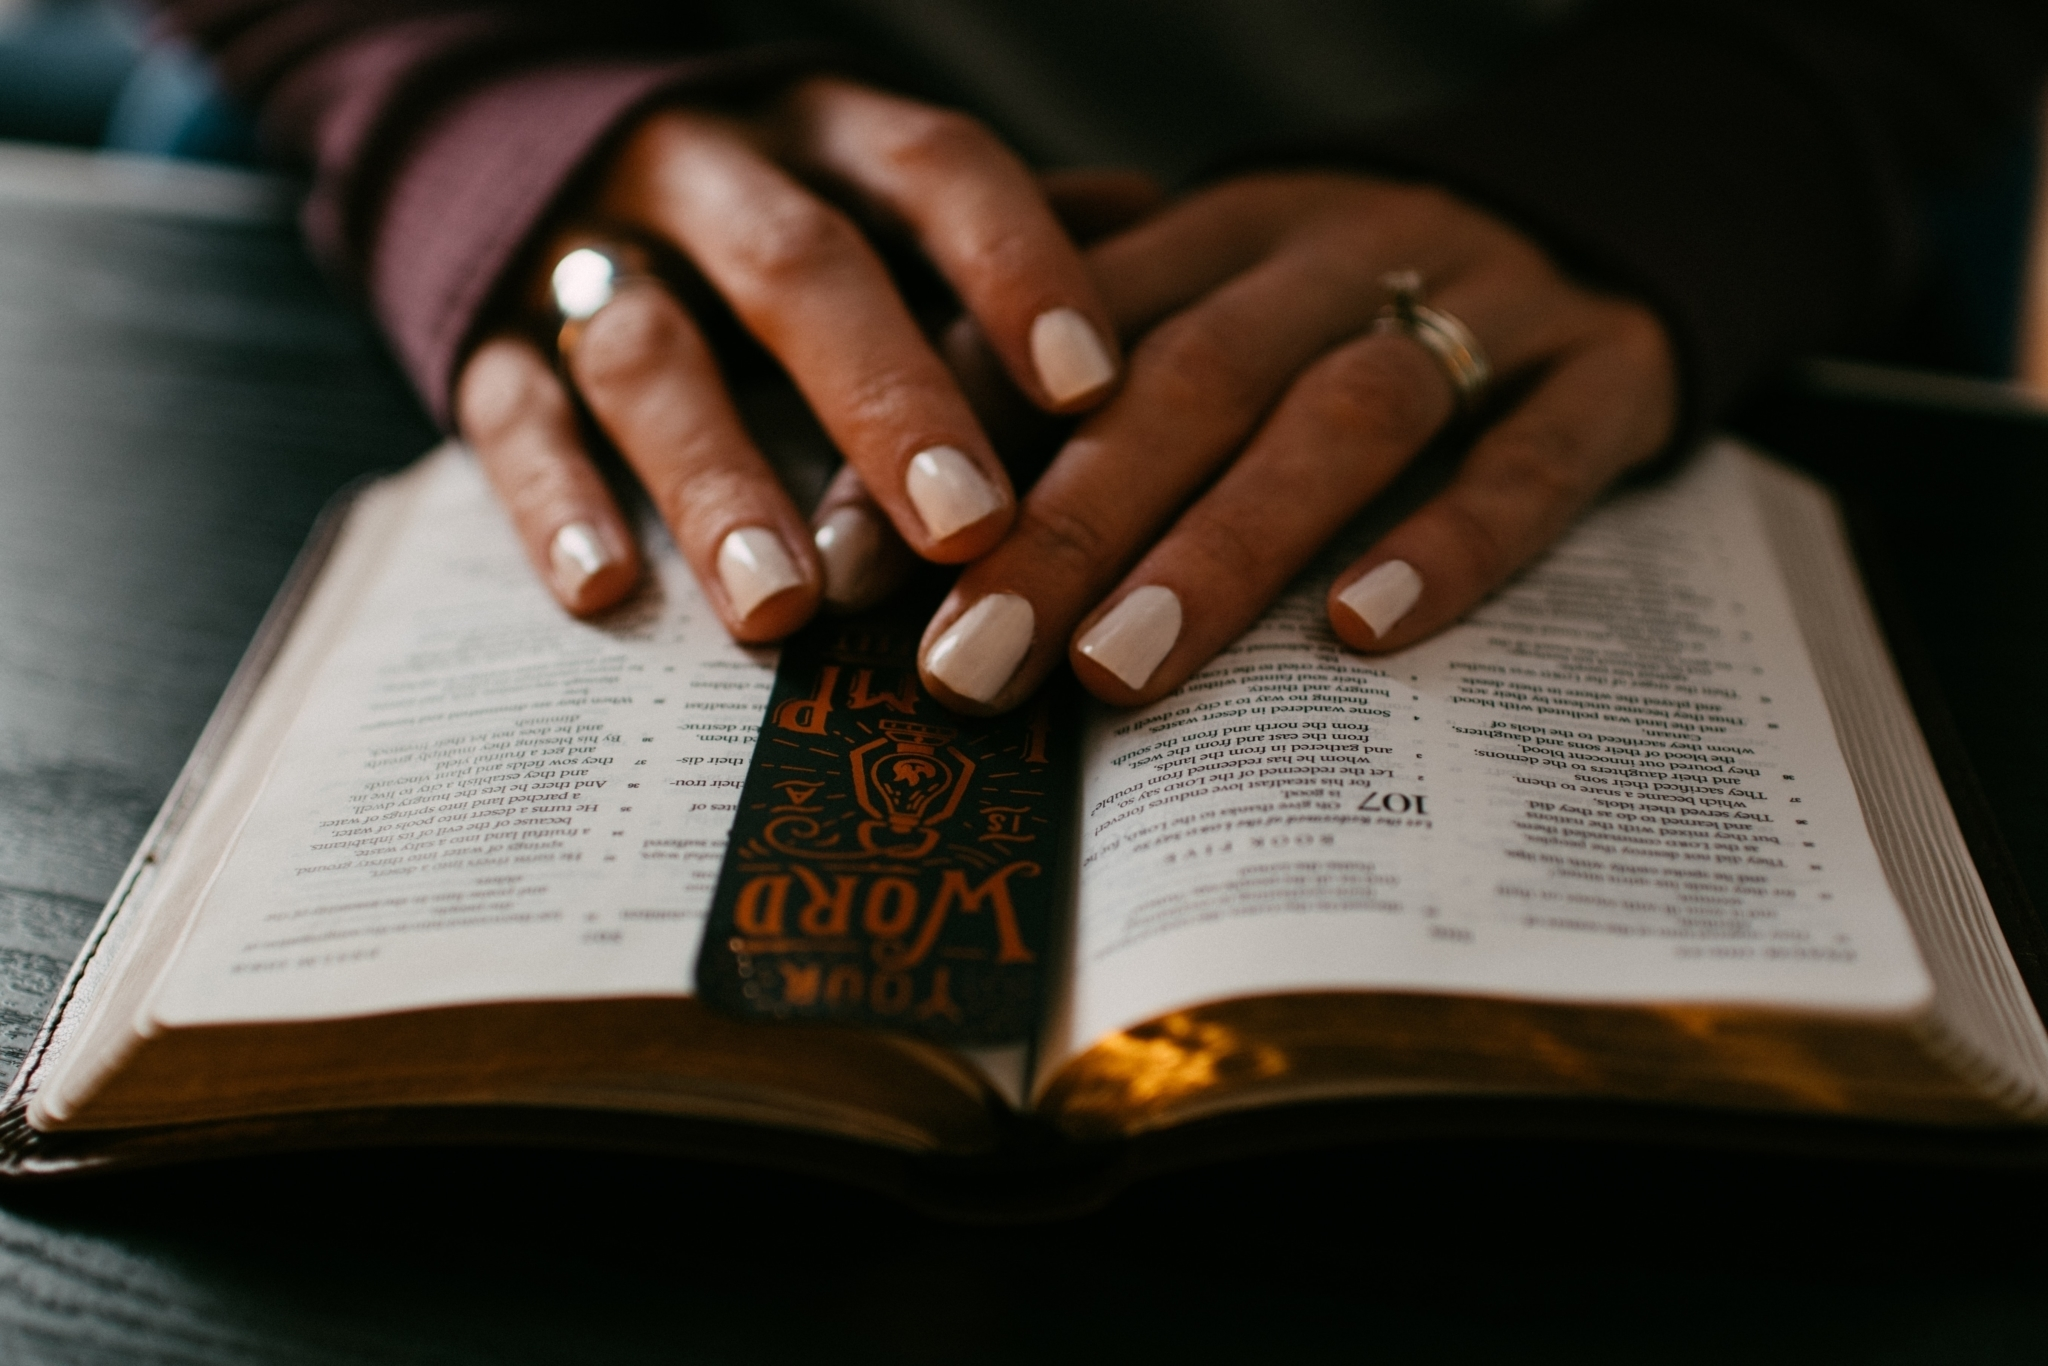 Prayer bible hands